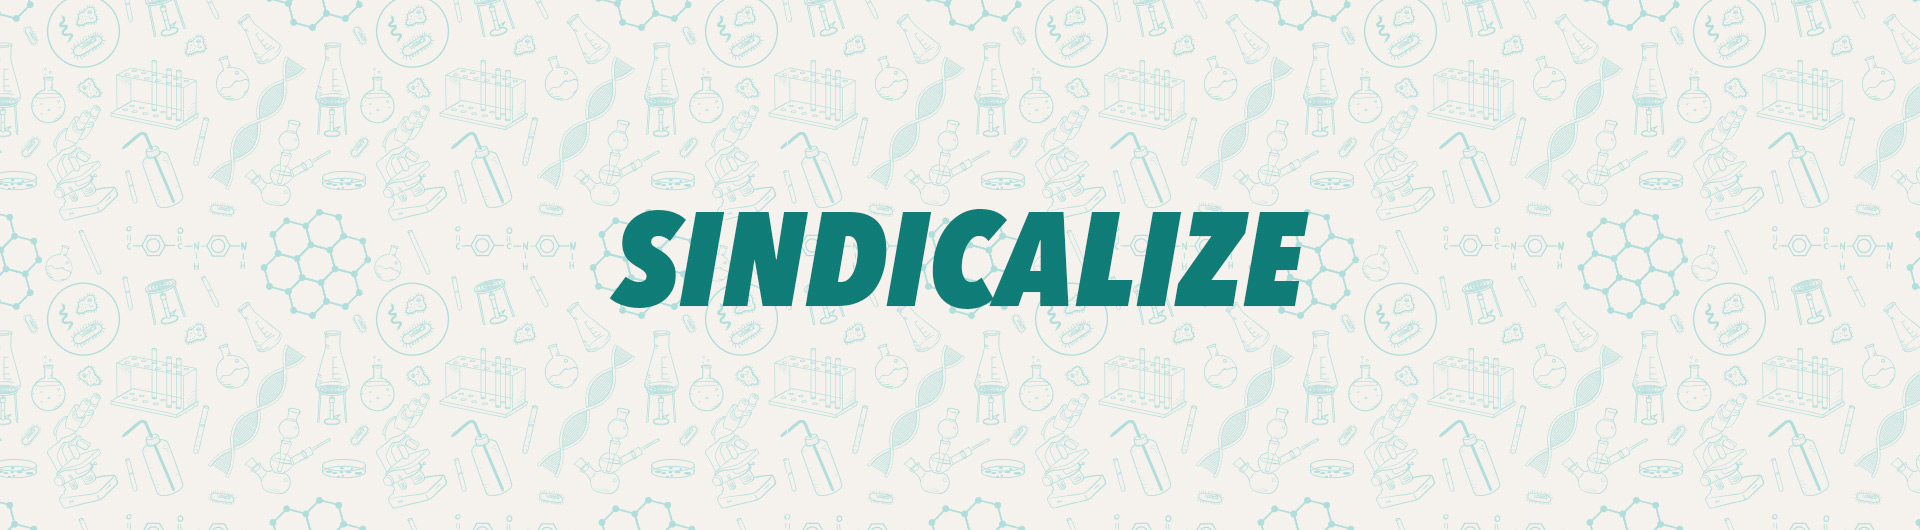 Sindicalize